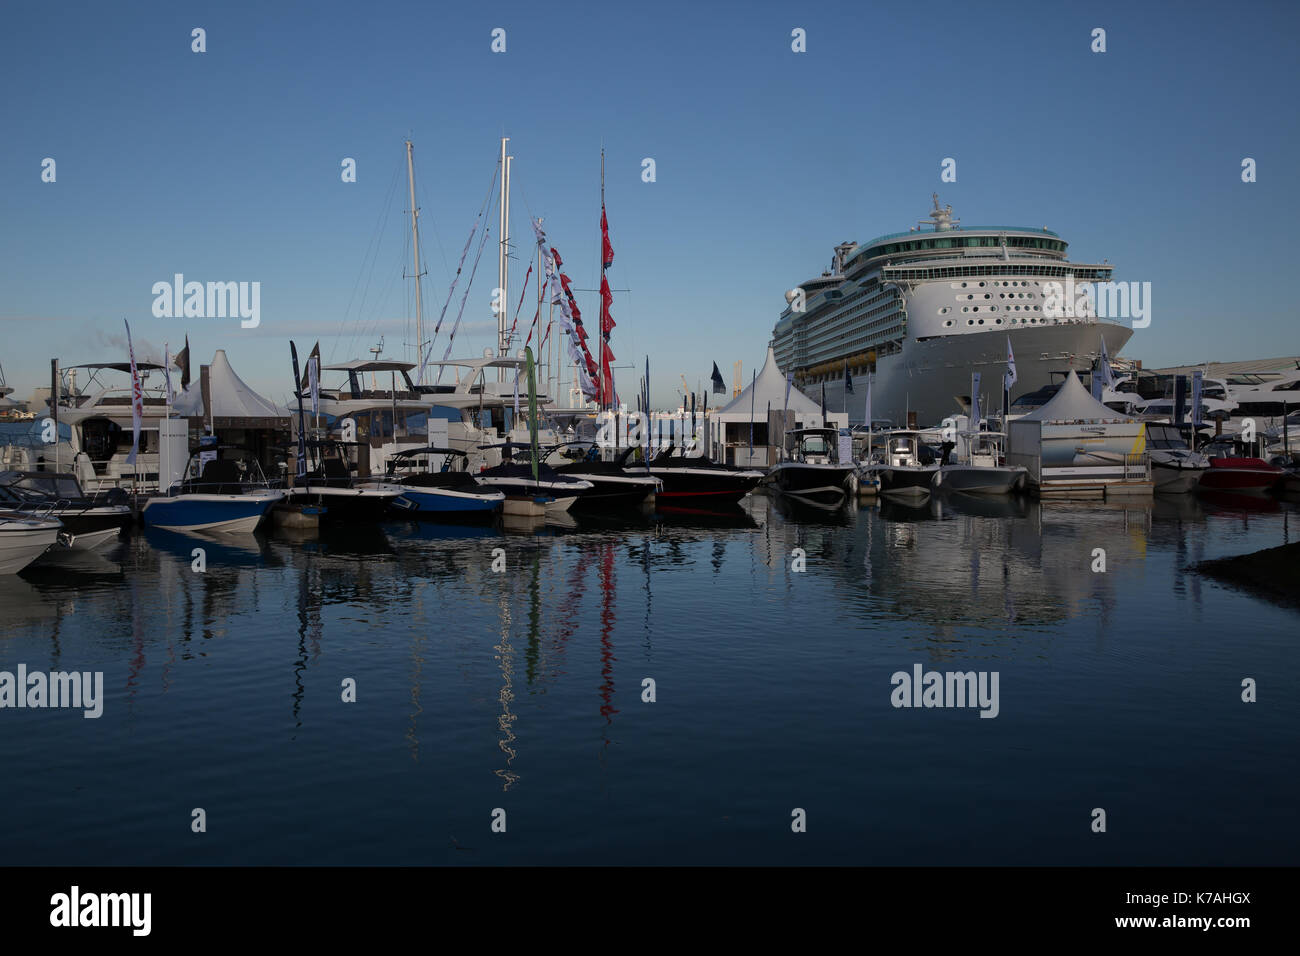 Southampton, UK. 15th Sep, 2017. Navigator of the seas docks beside The 49th Southampton Boat Show which gets underway today. It was officially opened by Fashion and Lifestyle Entrepreneur, Millie Mackintosh. The next ten days are sure to be one of the world's premier nautical events. There are attractions for all the family with boats of various shapes and sizes from a dinghy to a super luxury motor yacht. Docked by the marina is Kaskelot one of the last remaining wooden tall ships for people to explore onboard and learn about its history Credit: Keith Larby/Alamy Live News - Stock Image